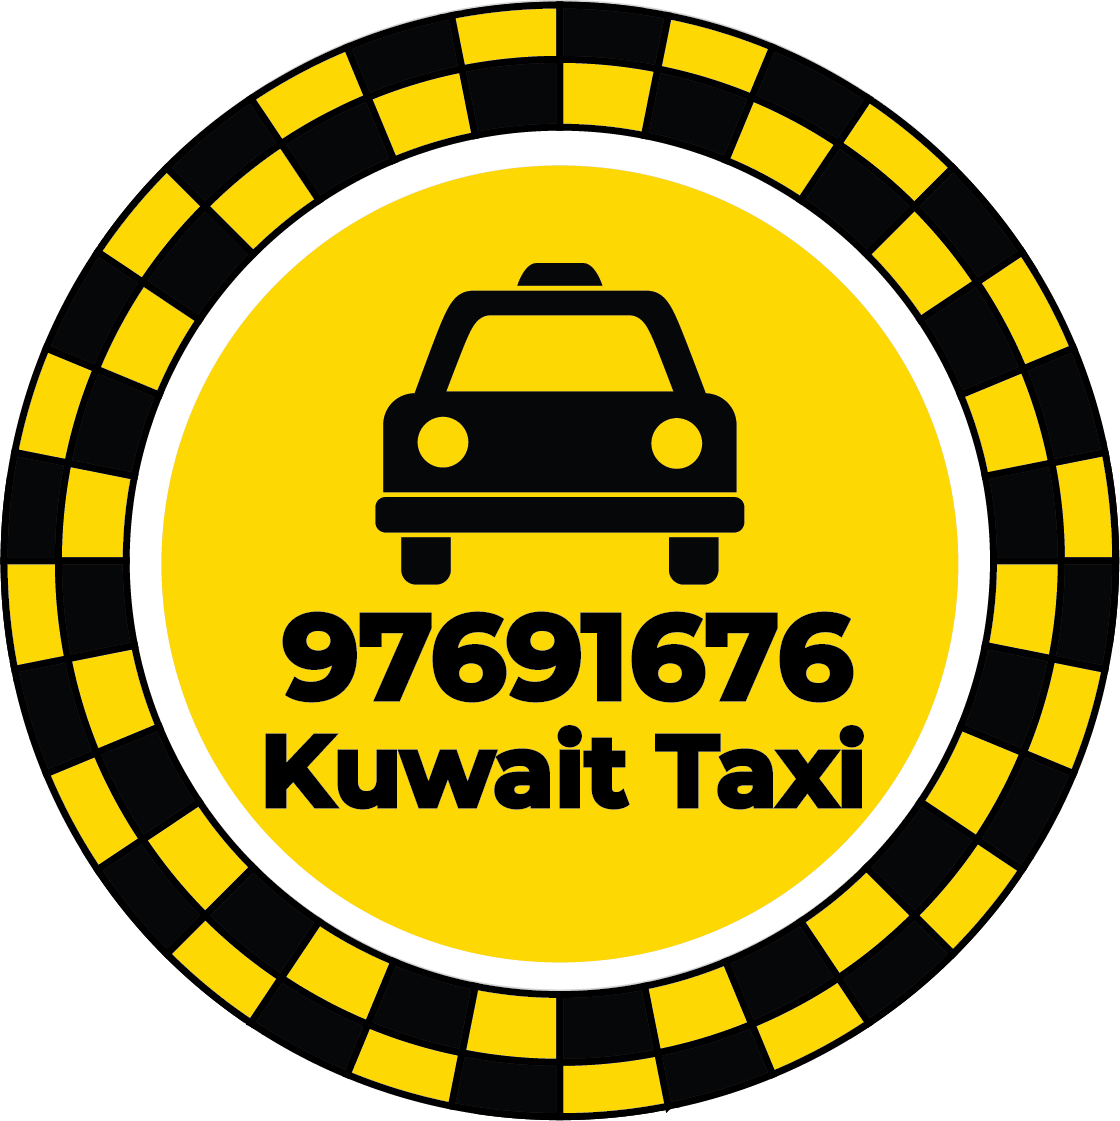 Private Taxi Service in Kuwait